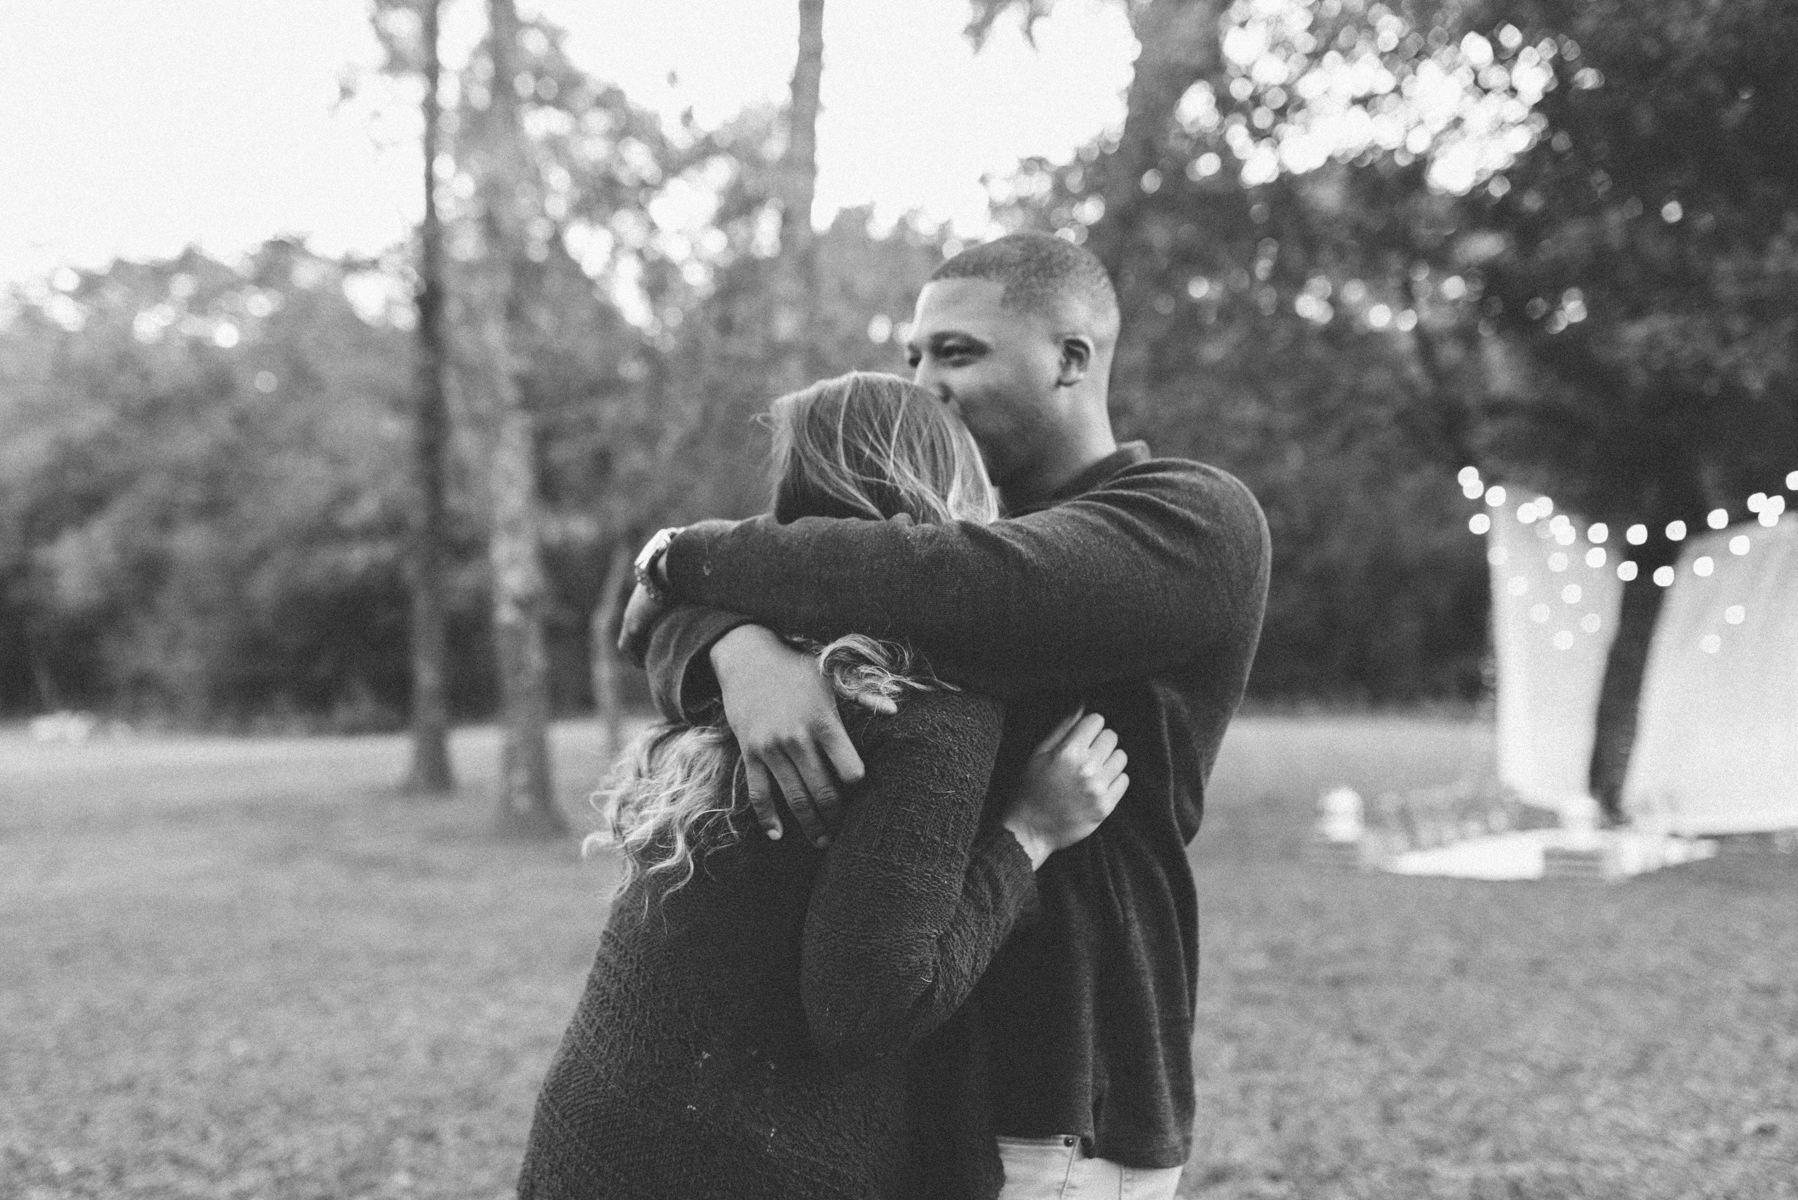 atlanta-engagement-photographer-atlanta-wedding-photographer-trent-david-kat-proposal-preview-28.jpg